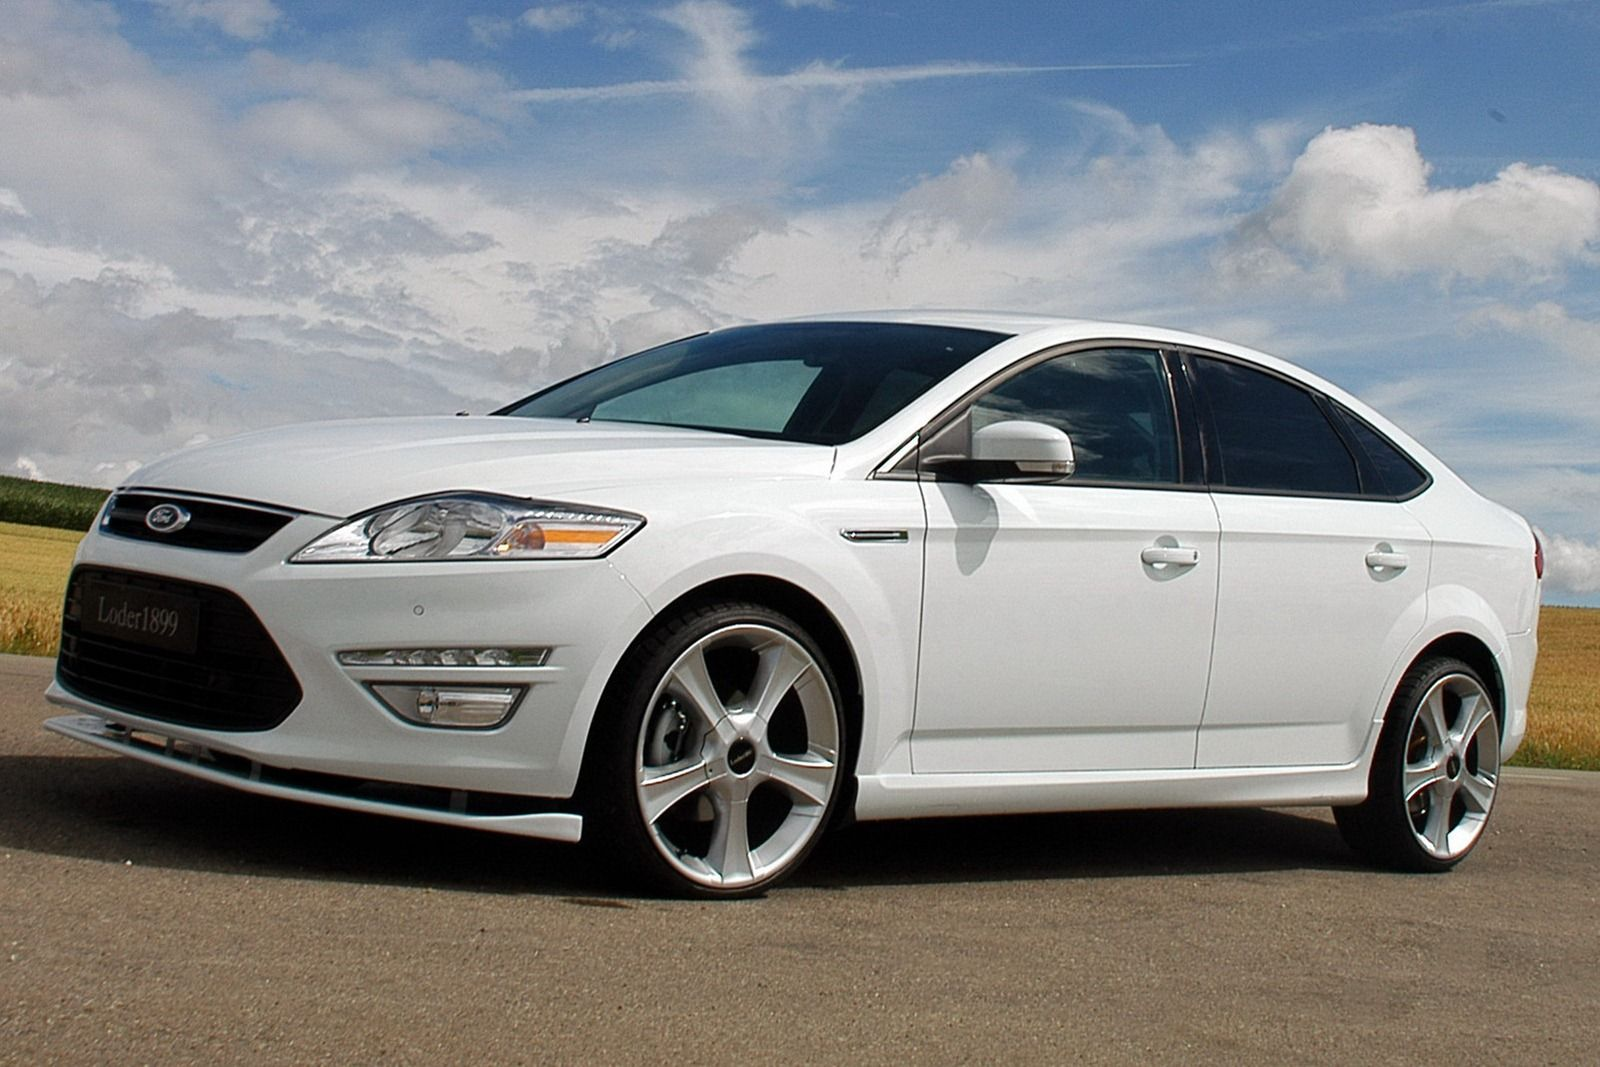 Loder1899 2013 Ford Mondeo Mk4 Loder1899 Has Gabetumblr Ford Mondeo Ford Lovely Car